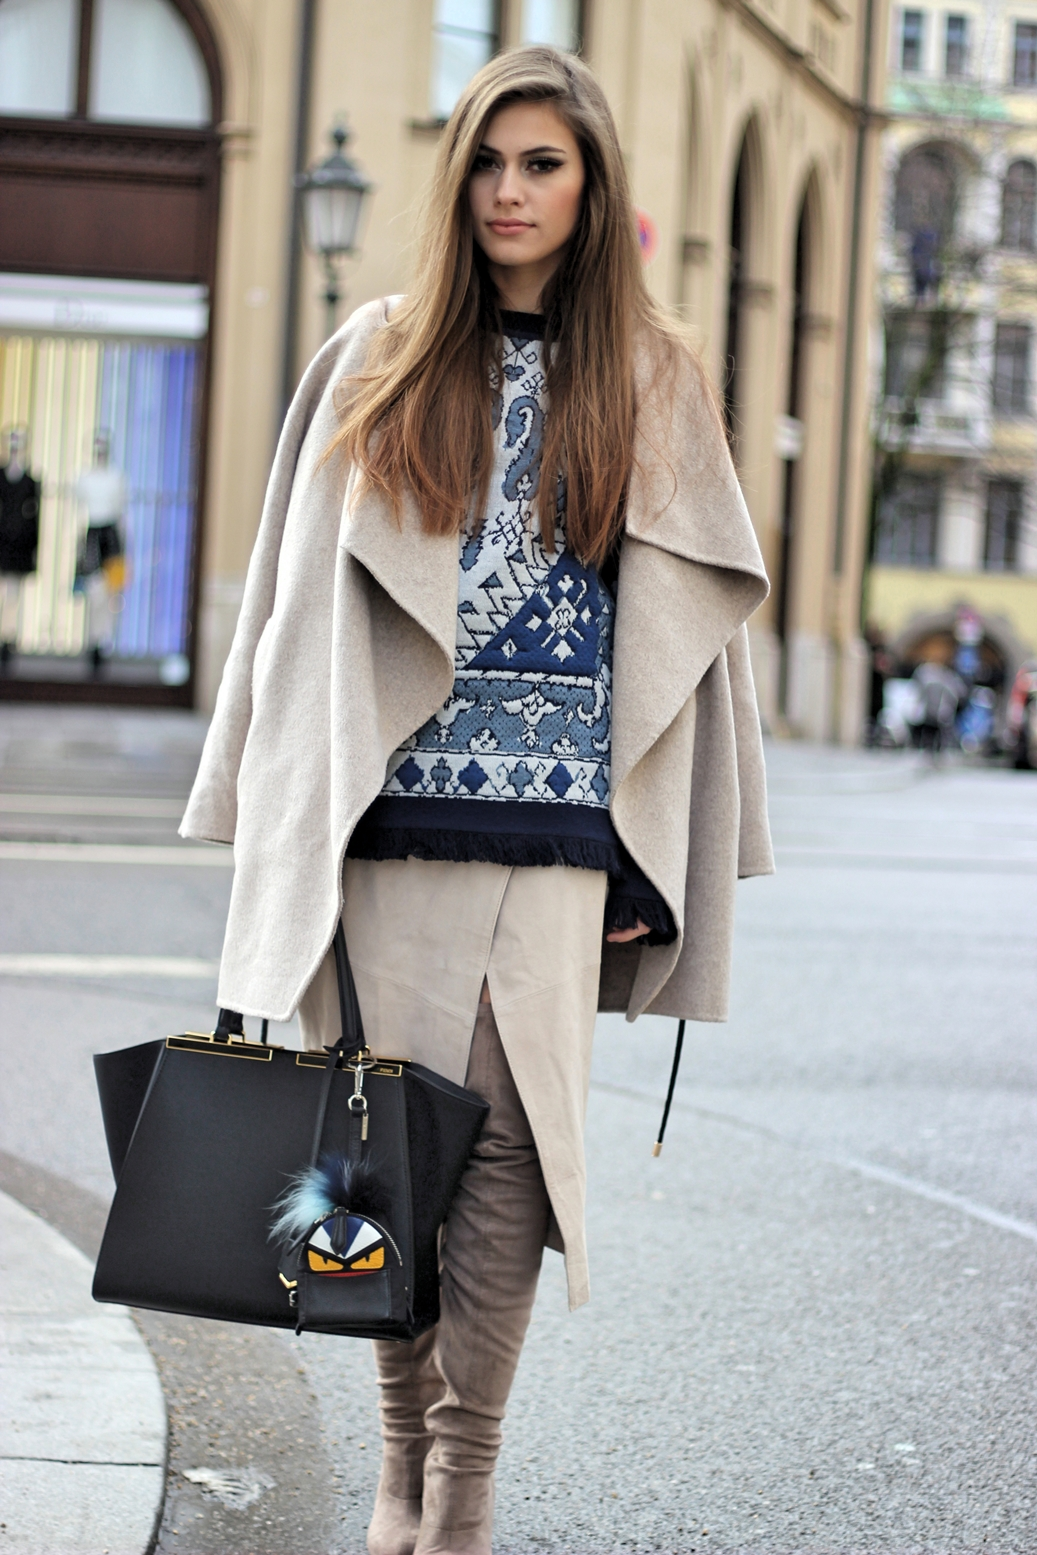 toryburch-sweater-zara-coat-fendi-bag-charm-streetstyle-germany-munich